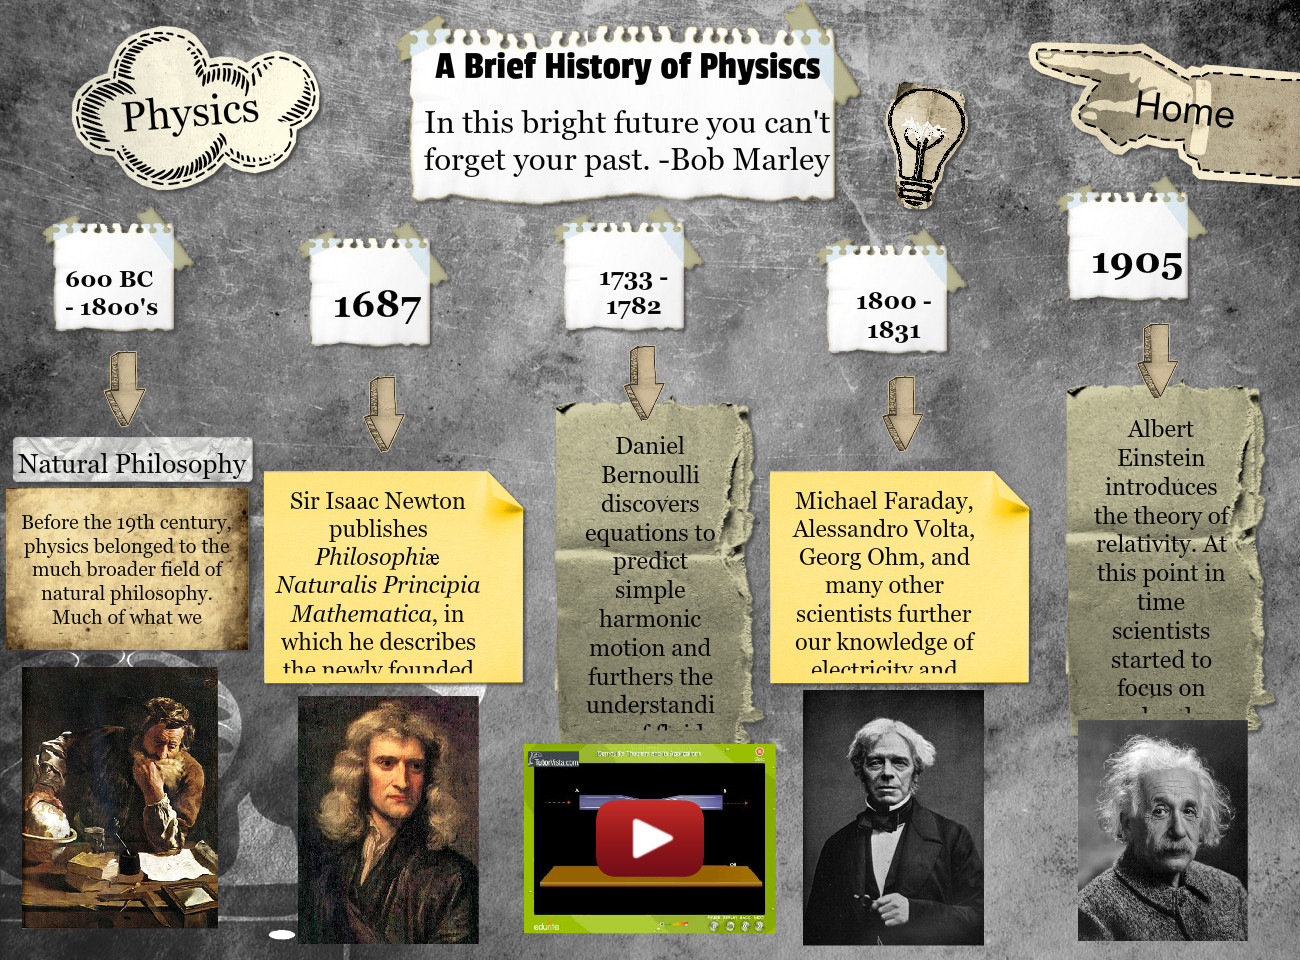 A Brief History of Physiscs